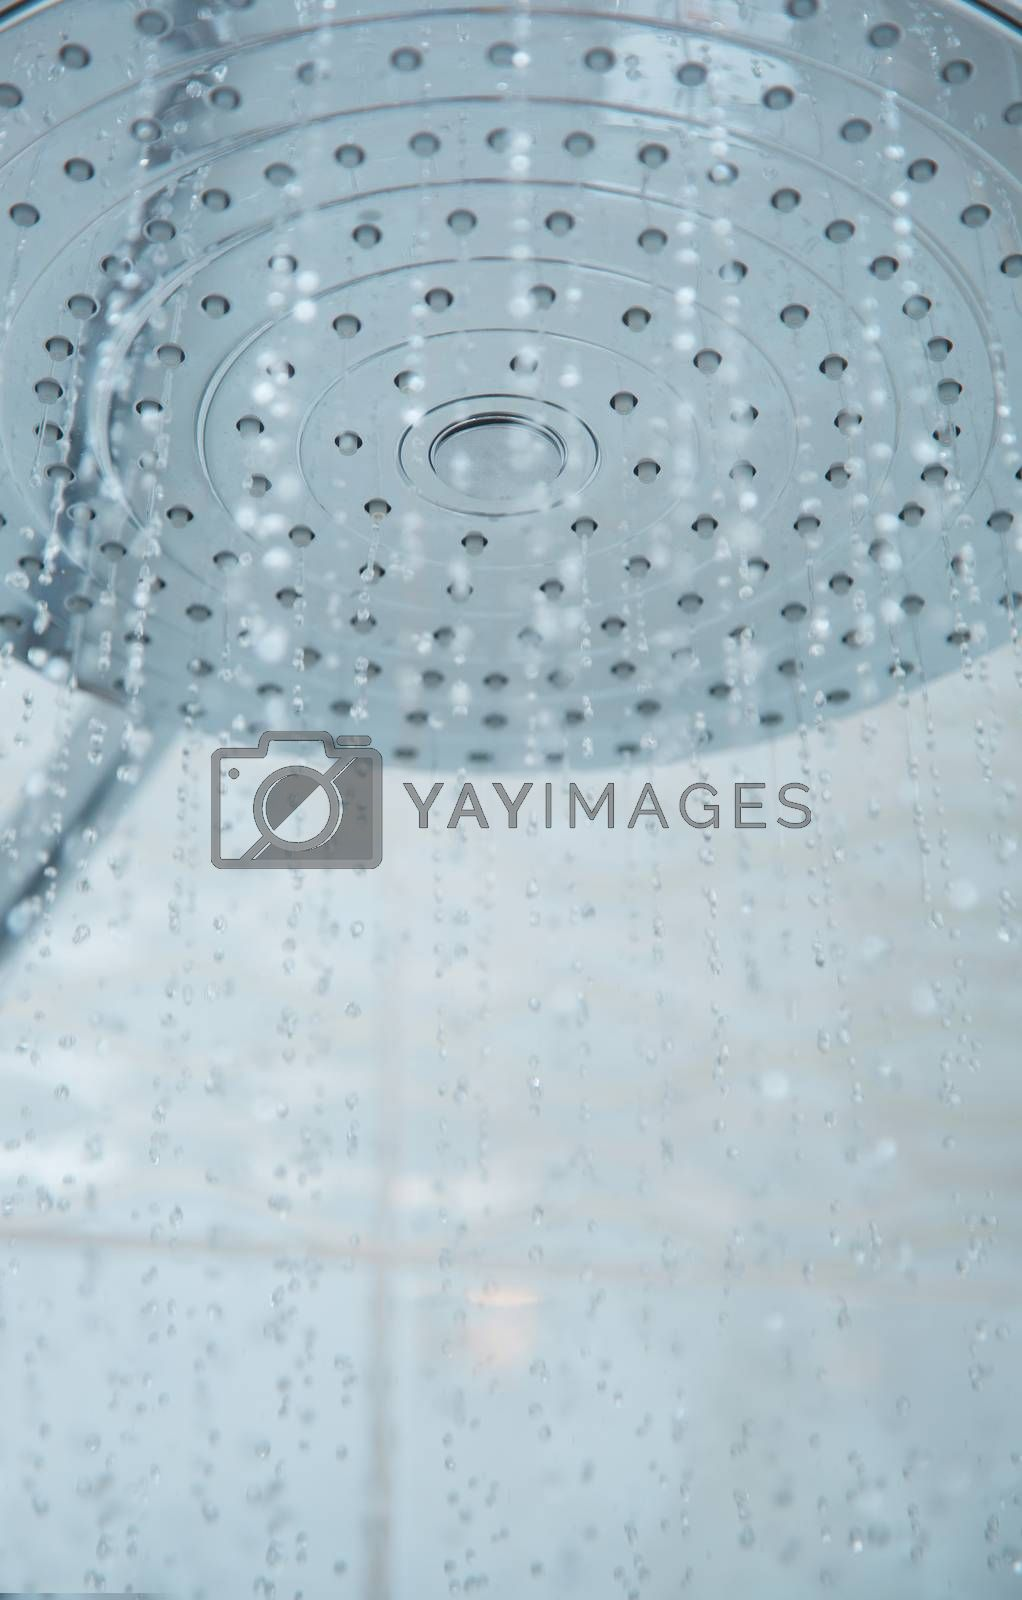 Shower head with flowing water by Novic